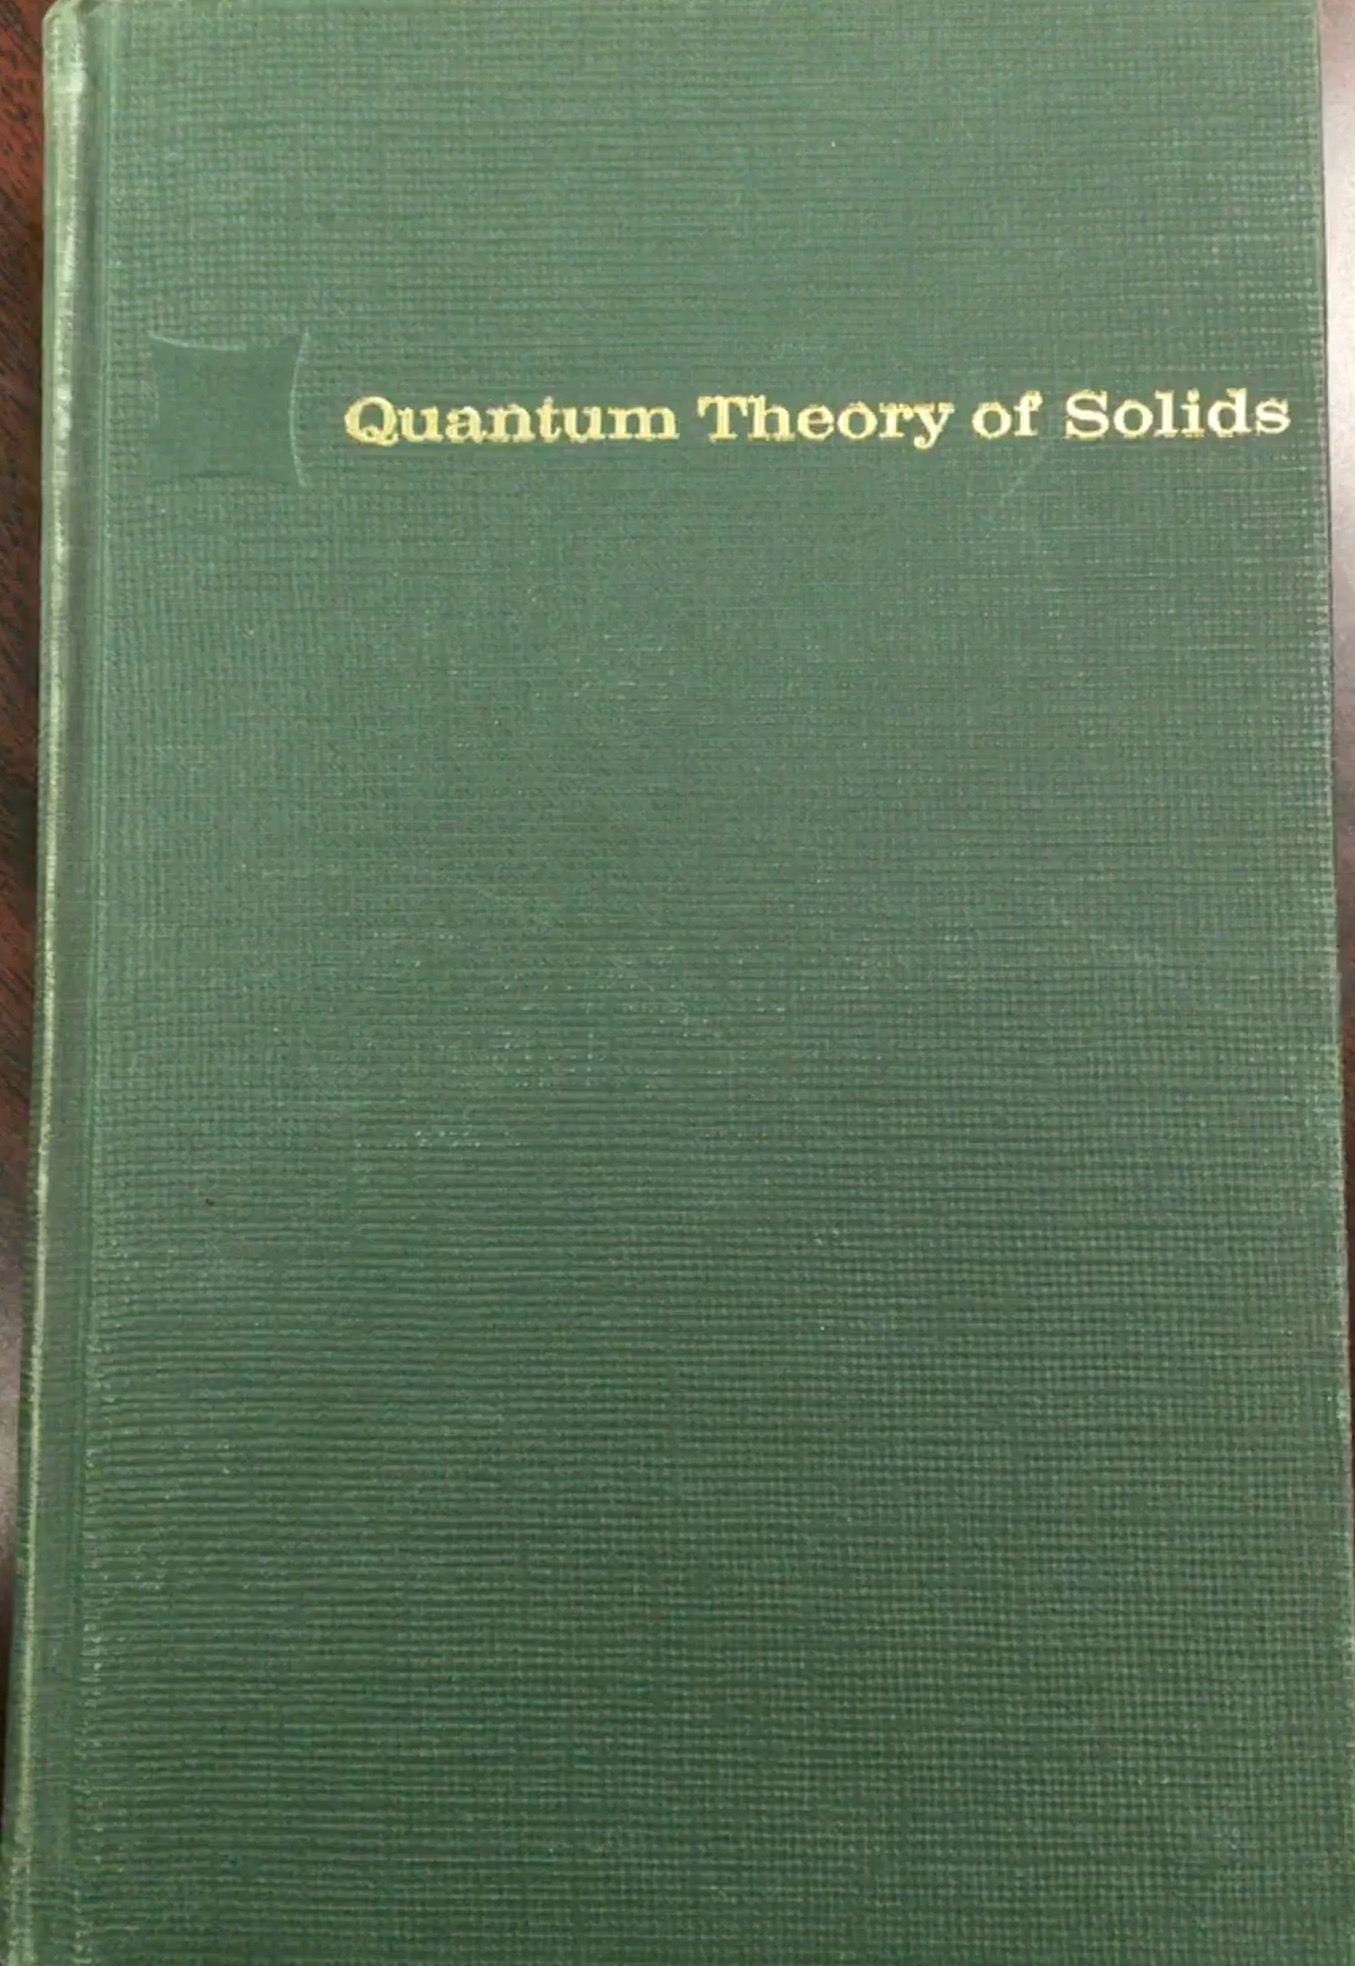 Image for Quantum Theory of Solids